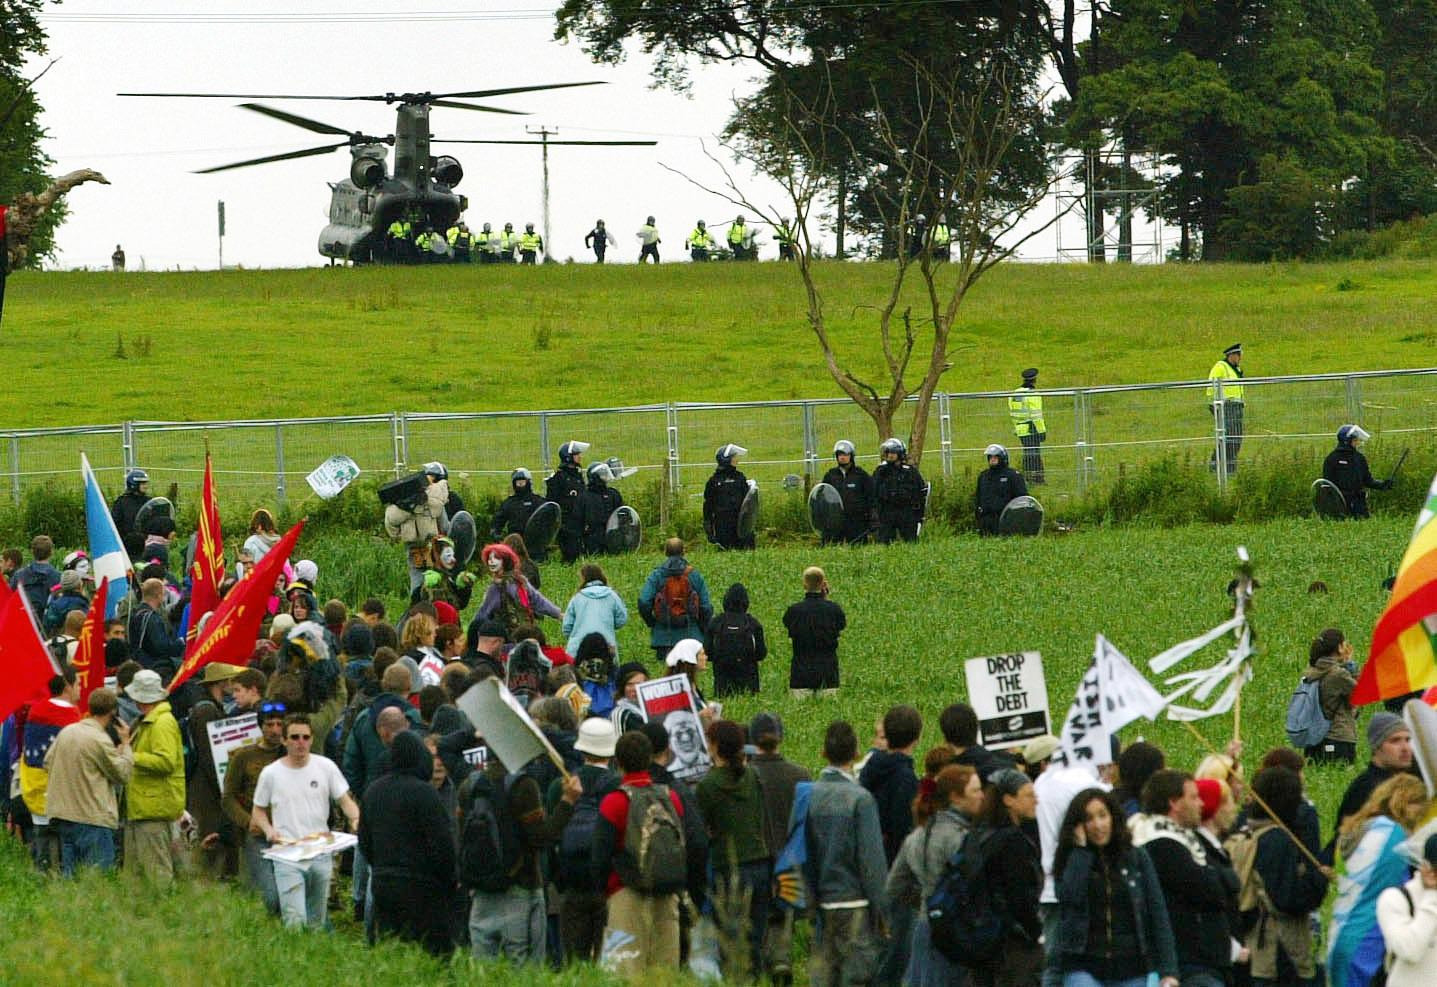 Police reinforcements are drafted in by helicopter, after protestors breached the security fence at Auchterarder during the G8 summit at Gleneagles in 2005.